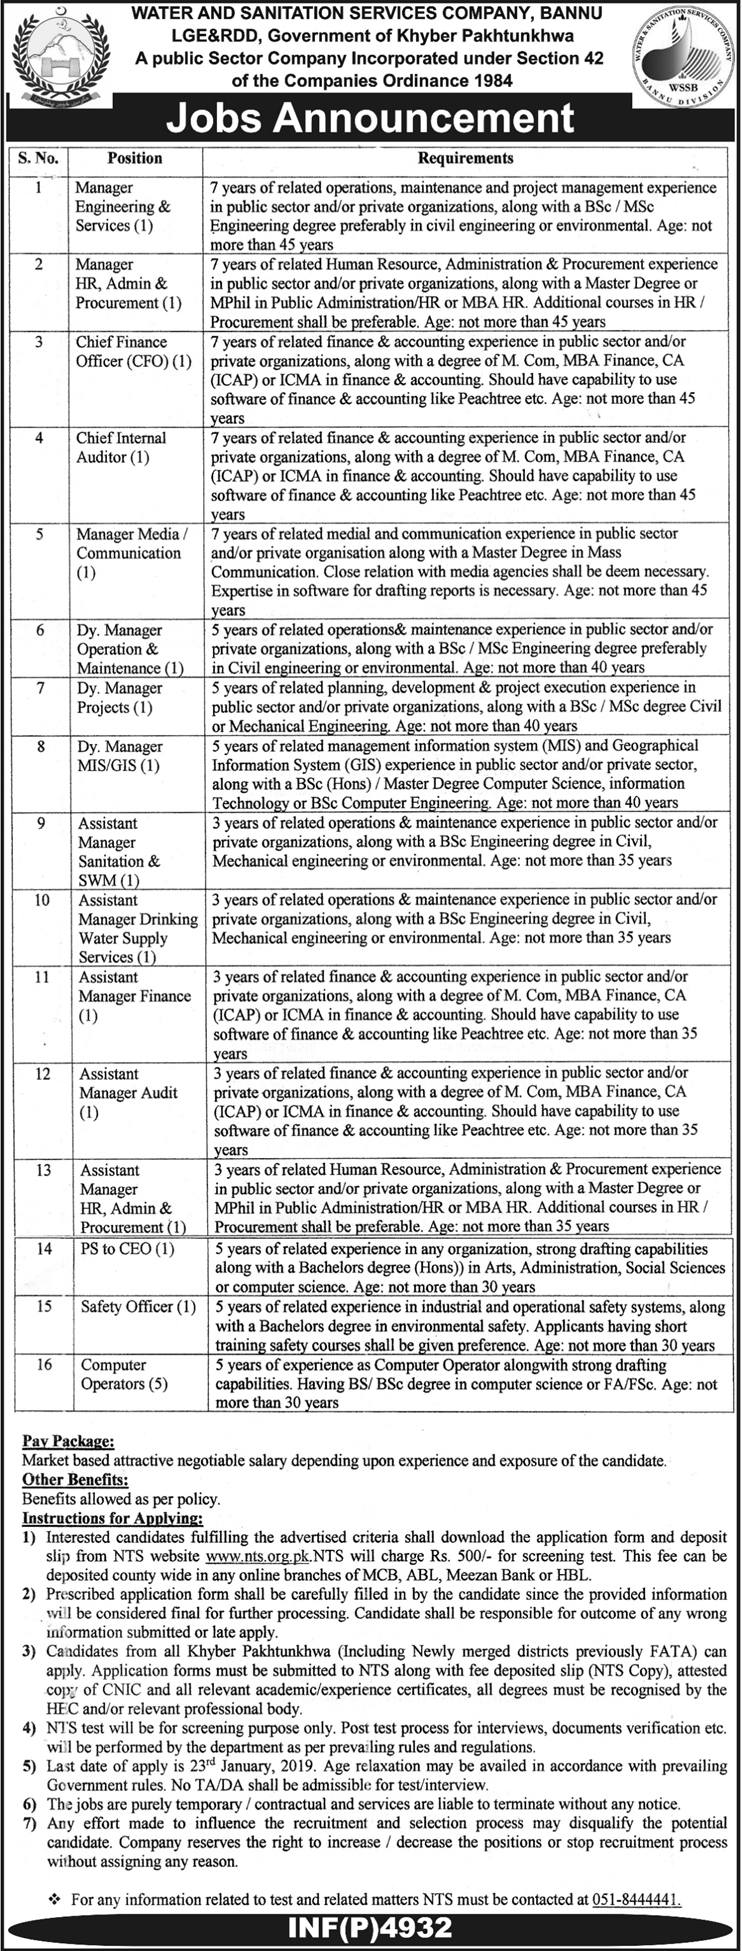 WSSCA Water and Sanitation Services Company  Bannu Jobs Via NTS